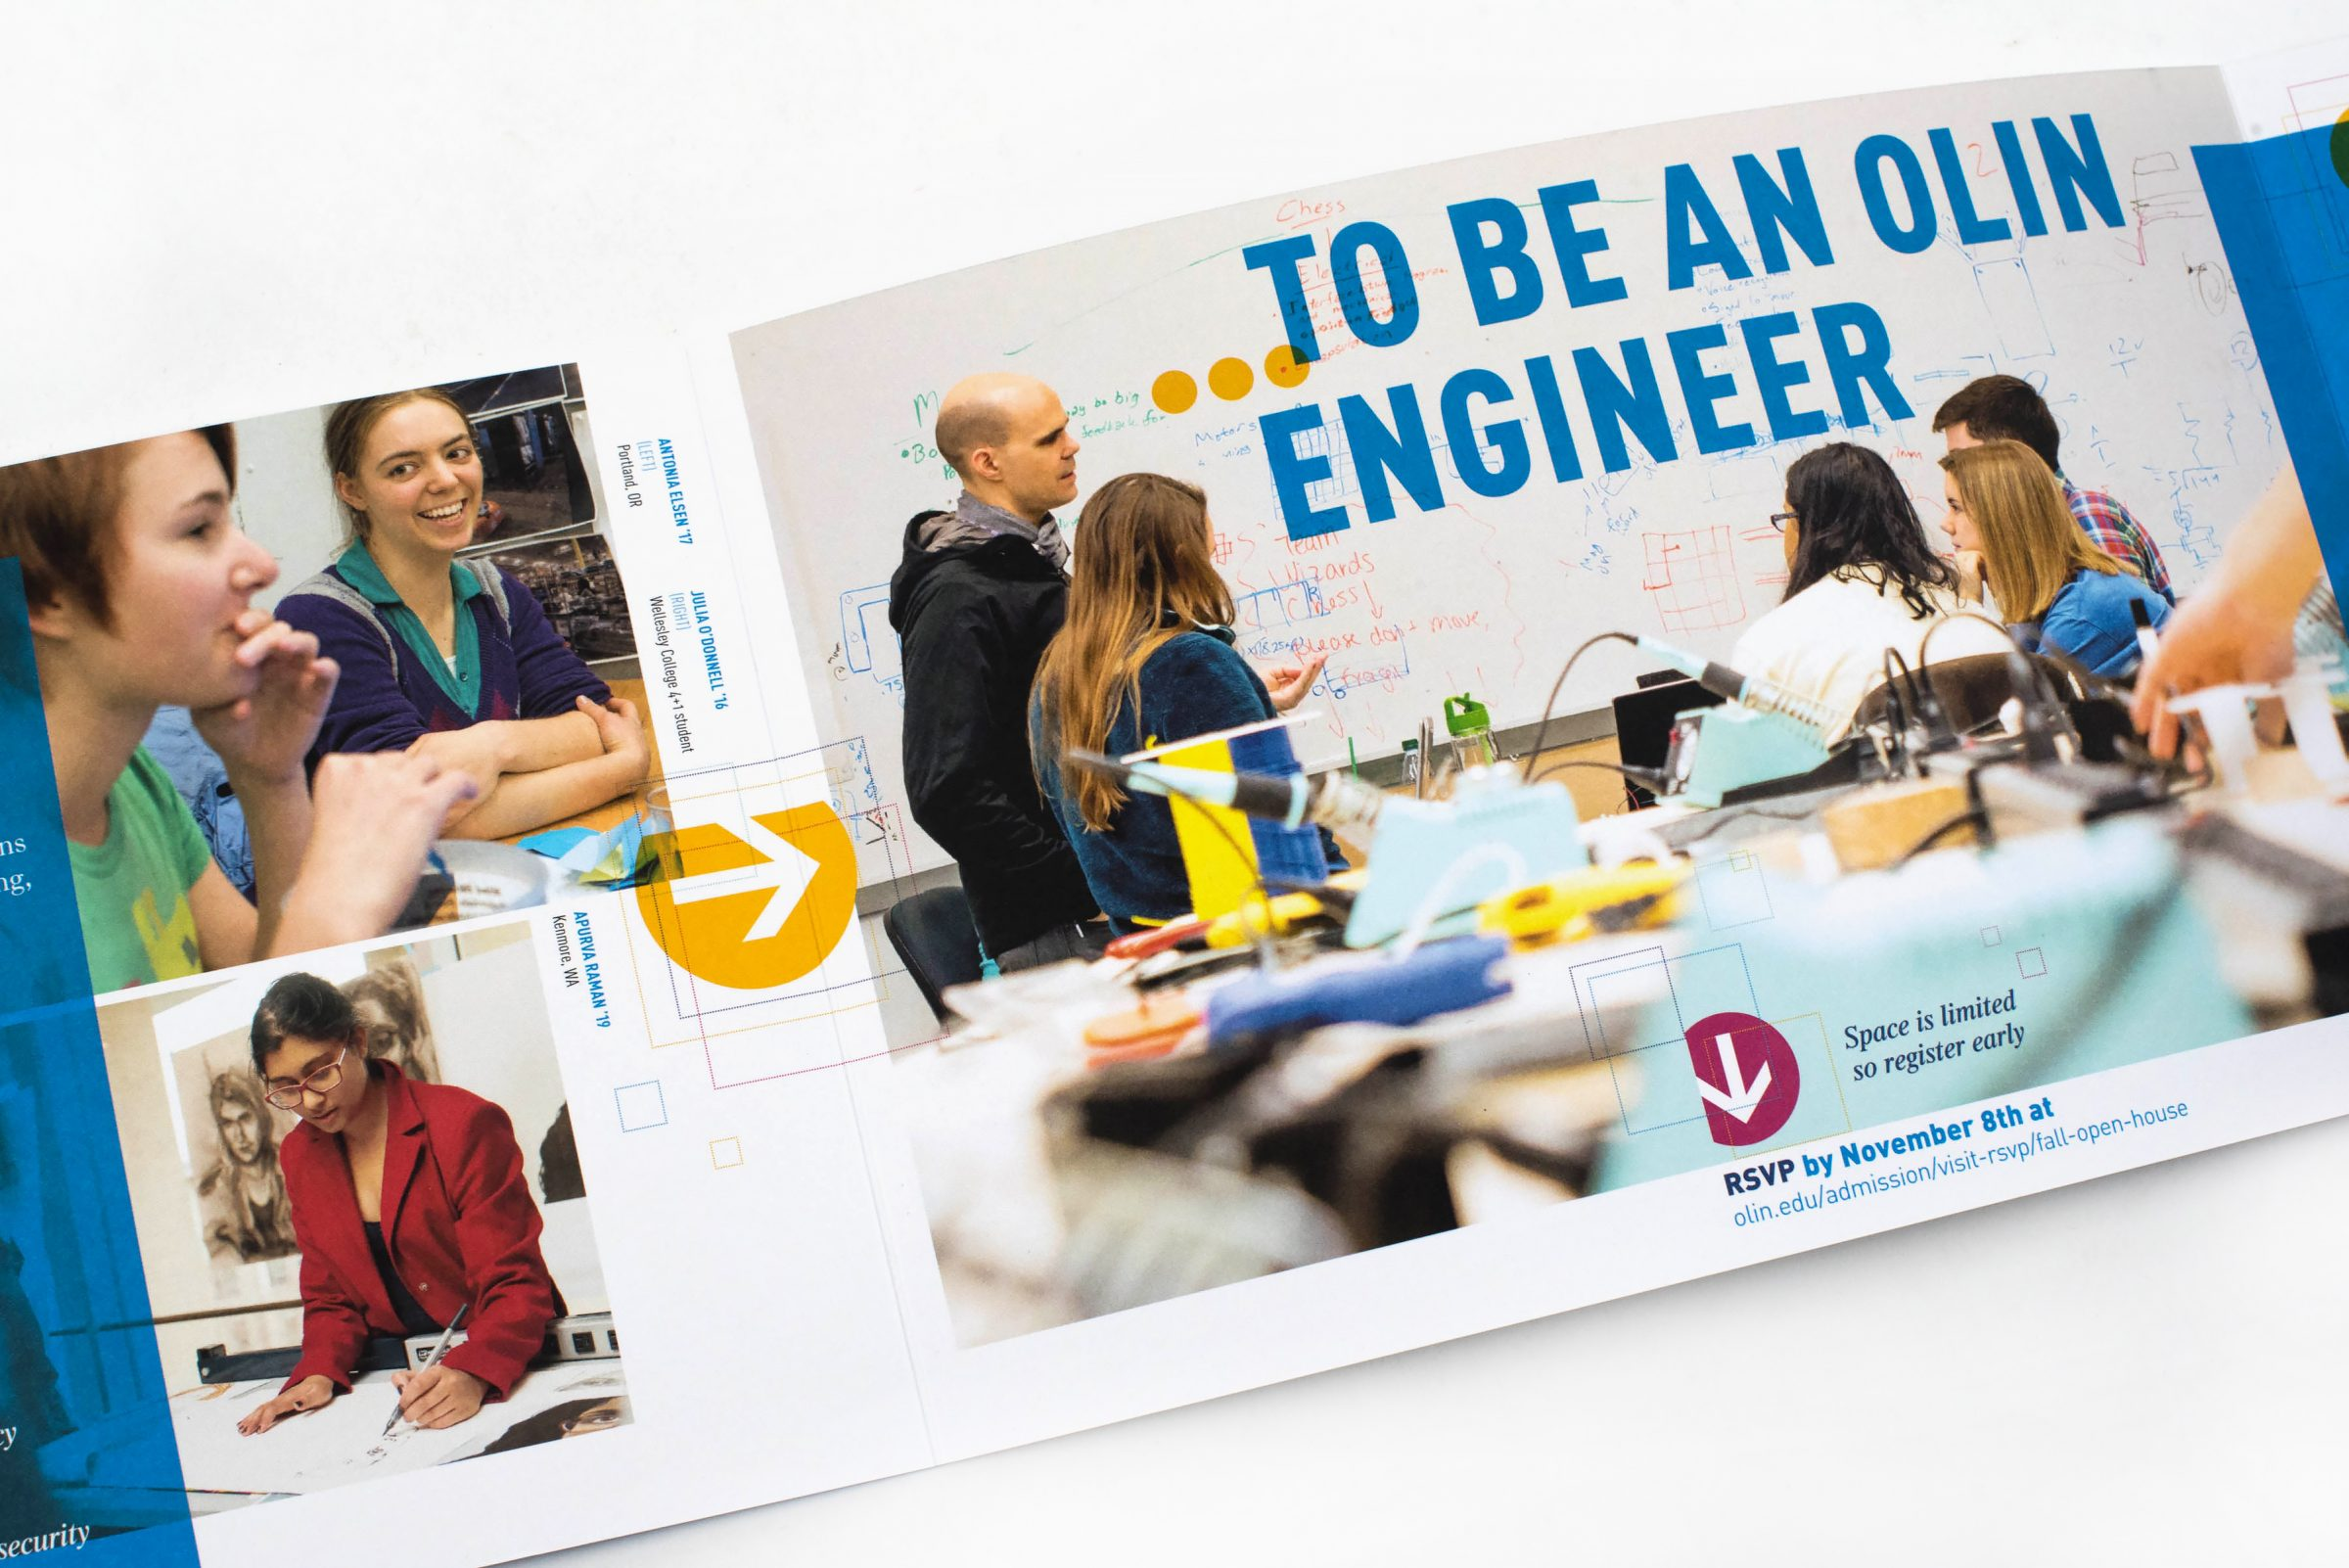 Olin College of Engineering Open House invites interior: To be an Olin engineer...